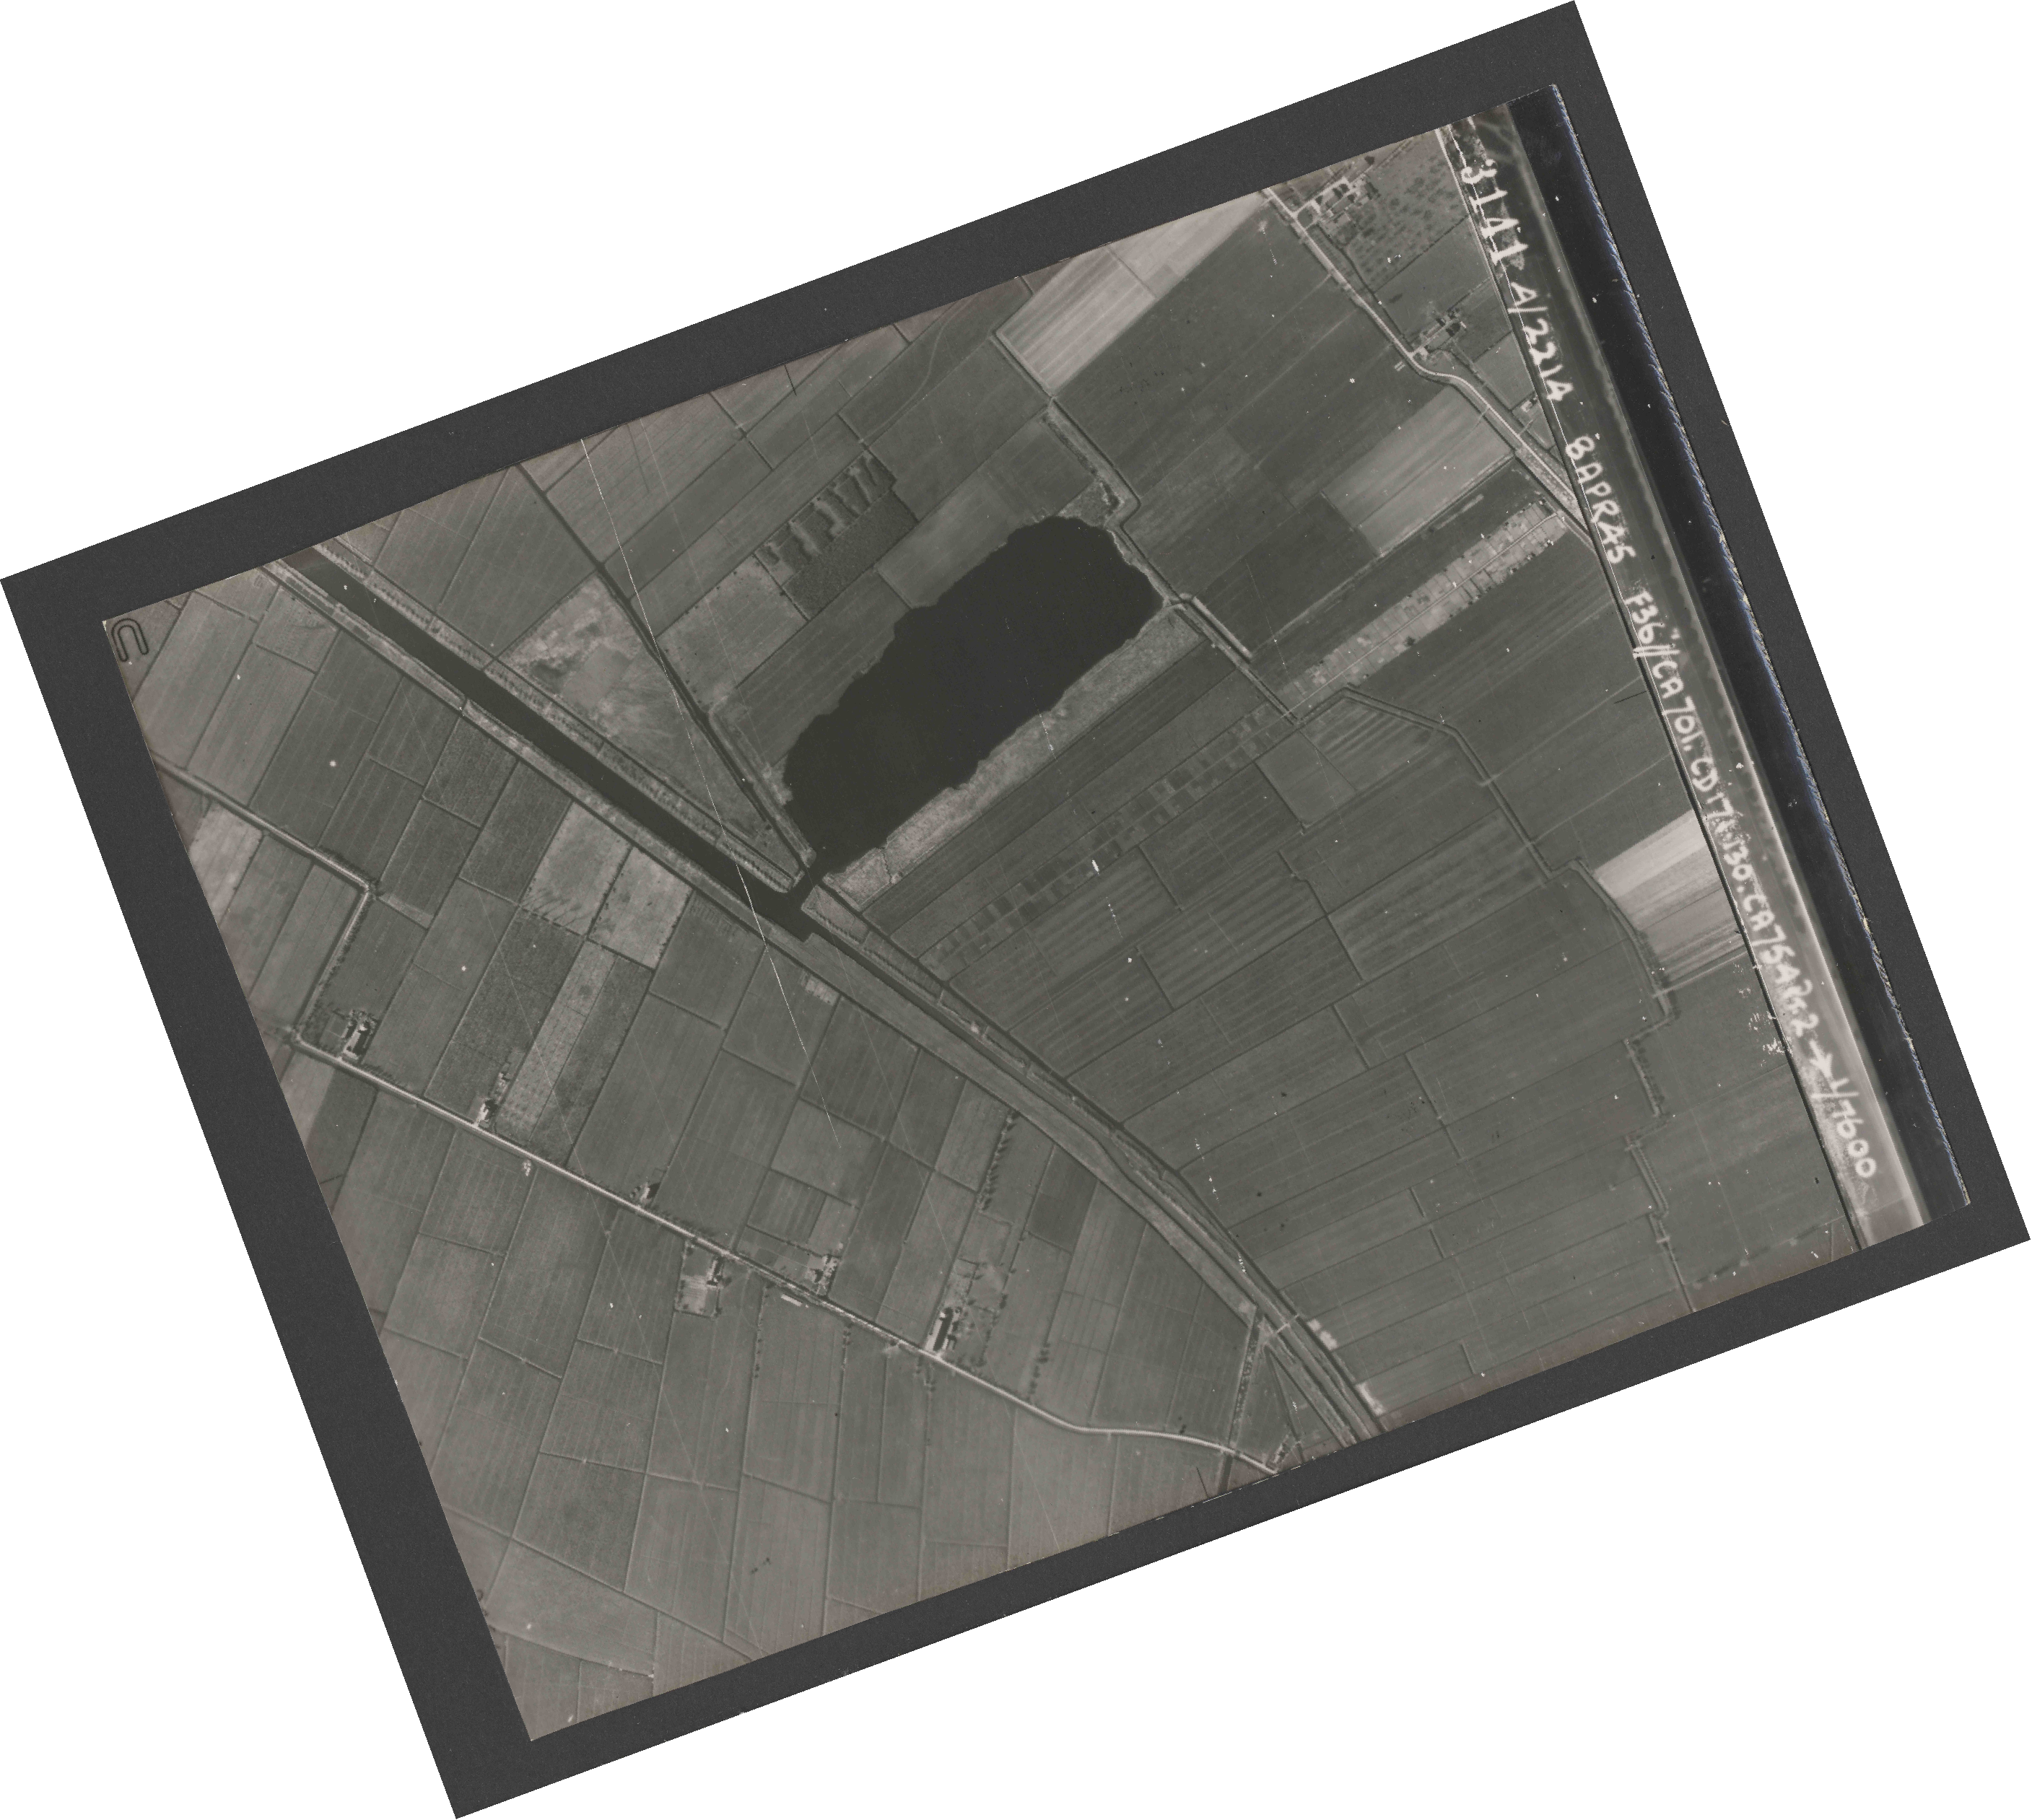 Collection RAF aerial photos 1940-1945 - flight 123, run 04, photo 3141